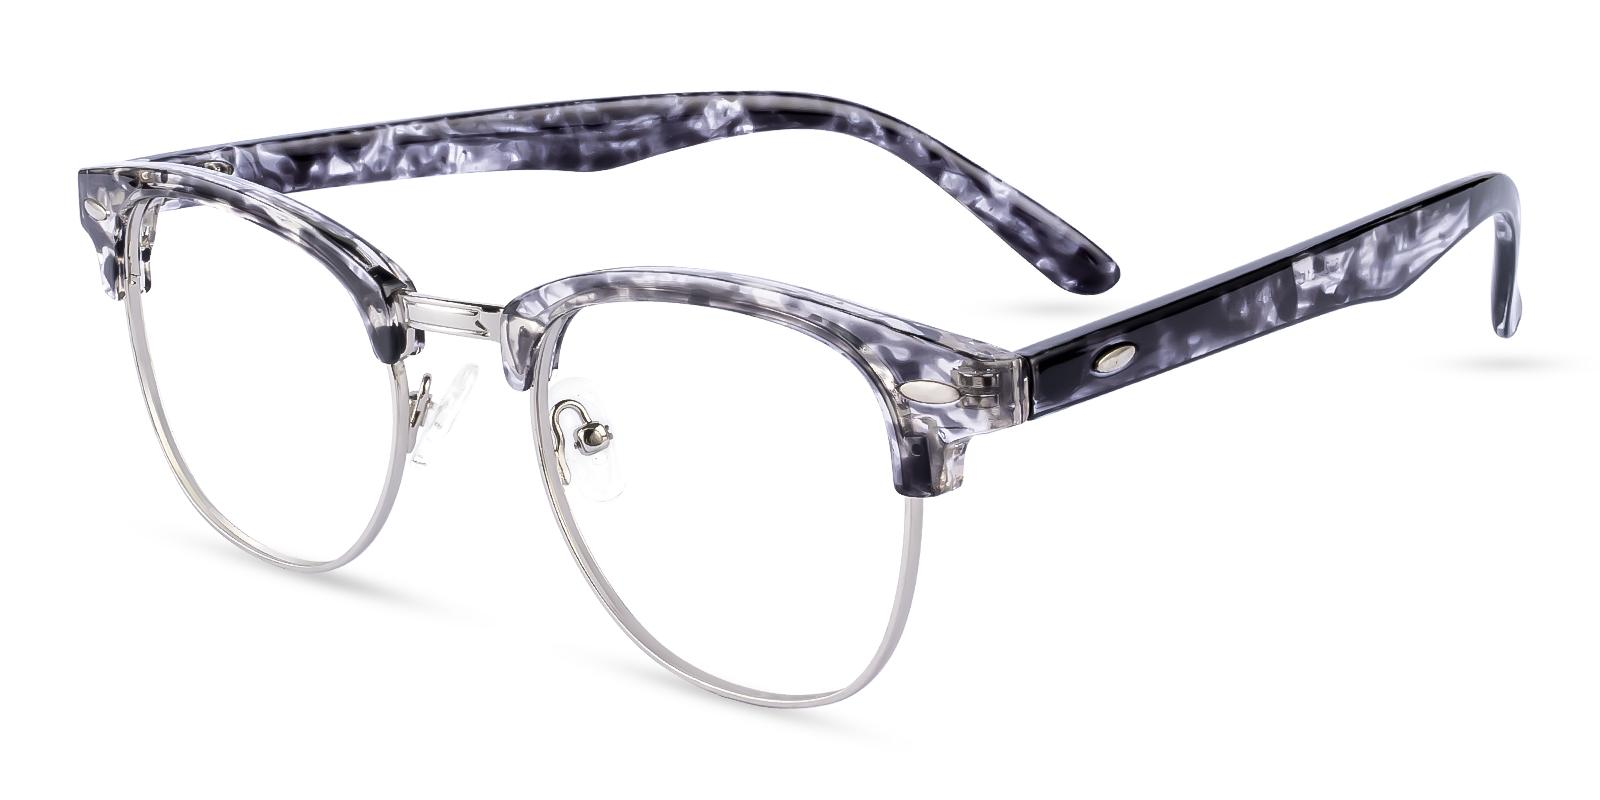 Greeley Pattern Metal Eyeglasses , NosePads Frames from ABBE Glasses